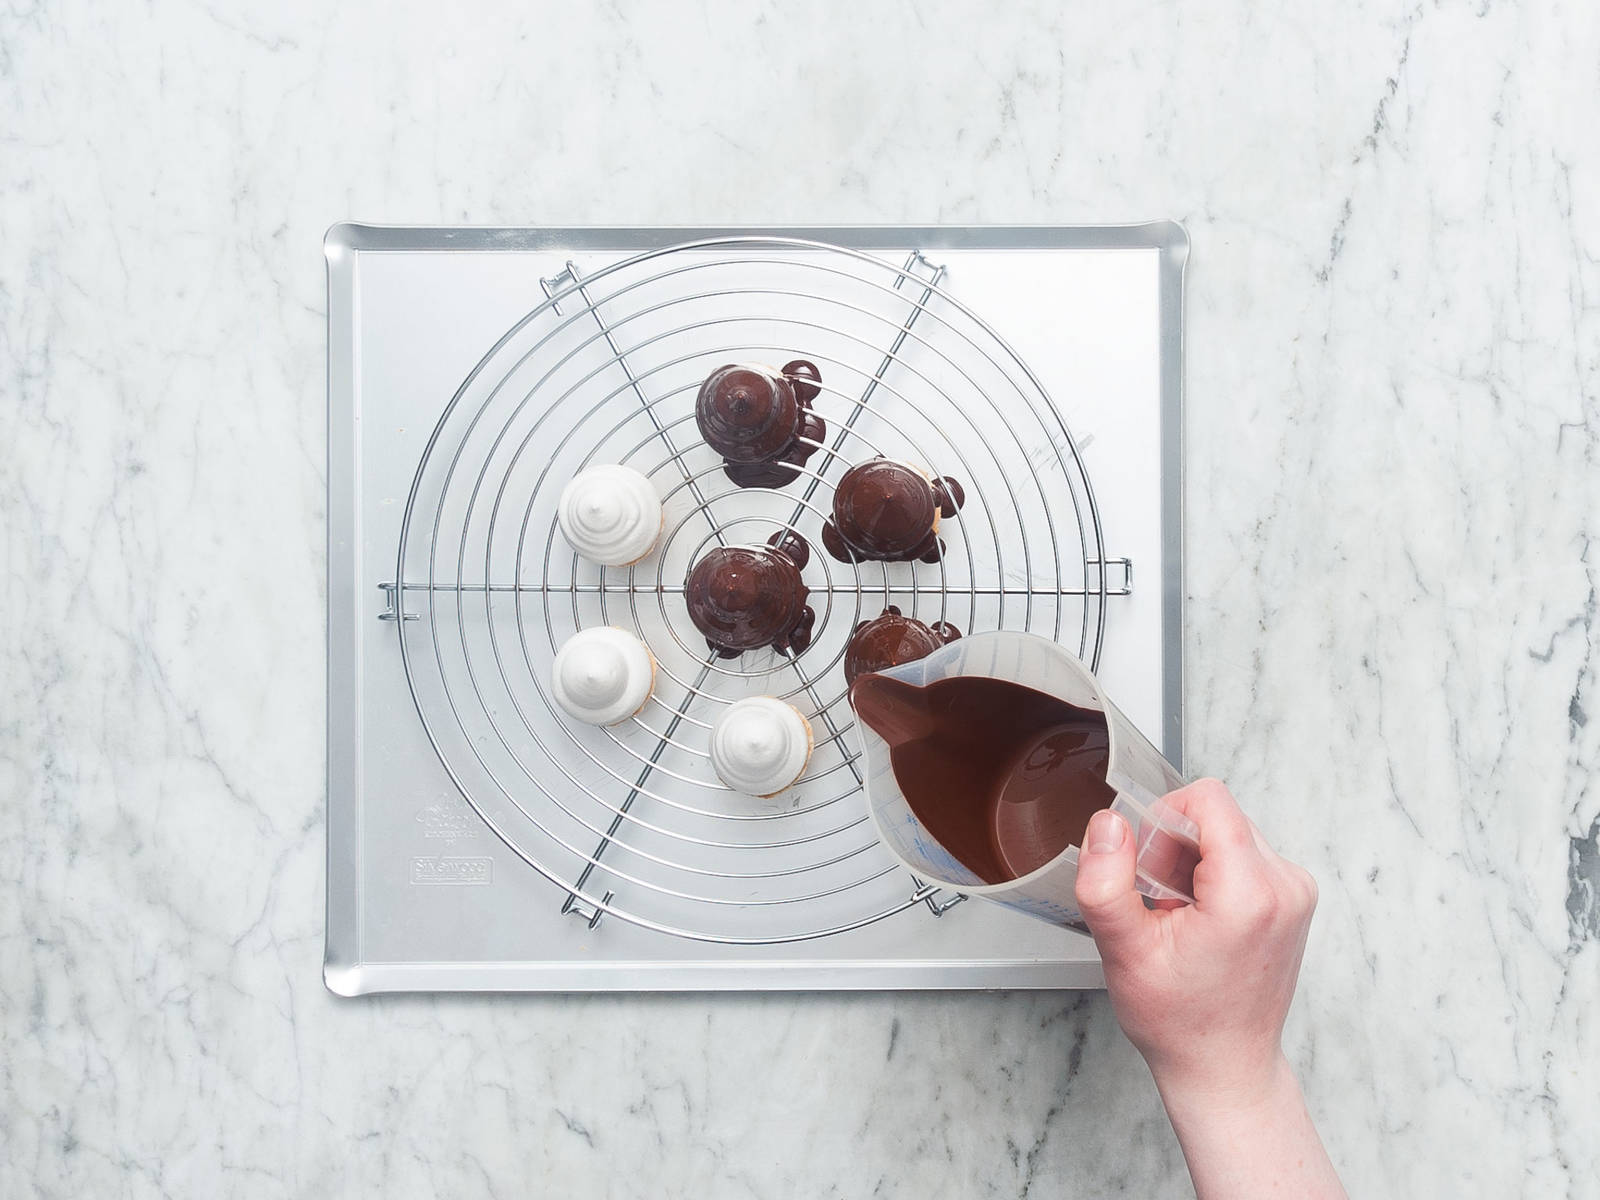 Pour chocolate over meringues carefully until they're evenly covered. Refrigerate mallomars for approx. 20 min. and enjoy cold!